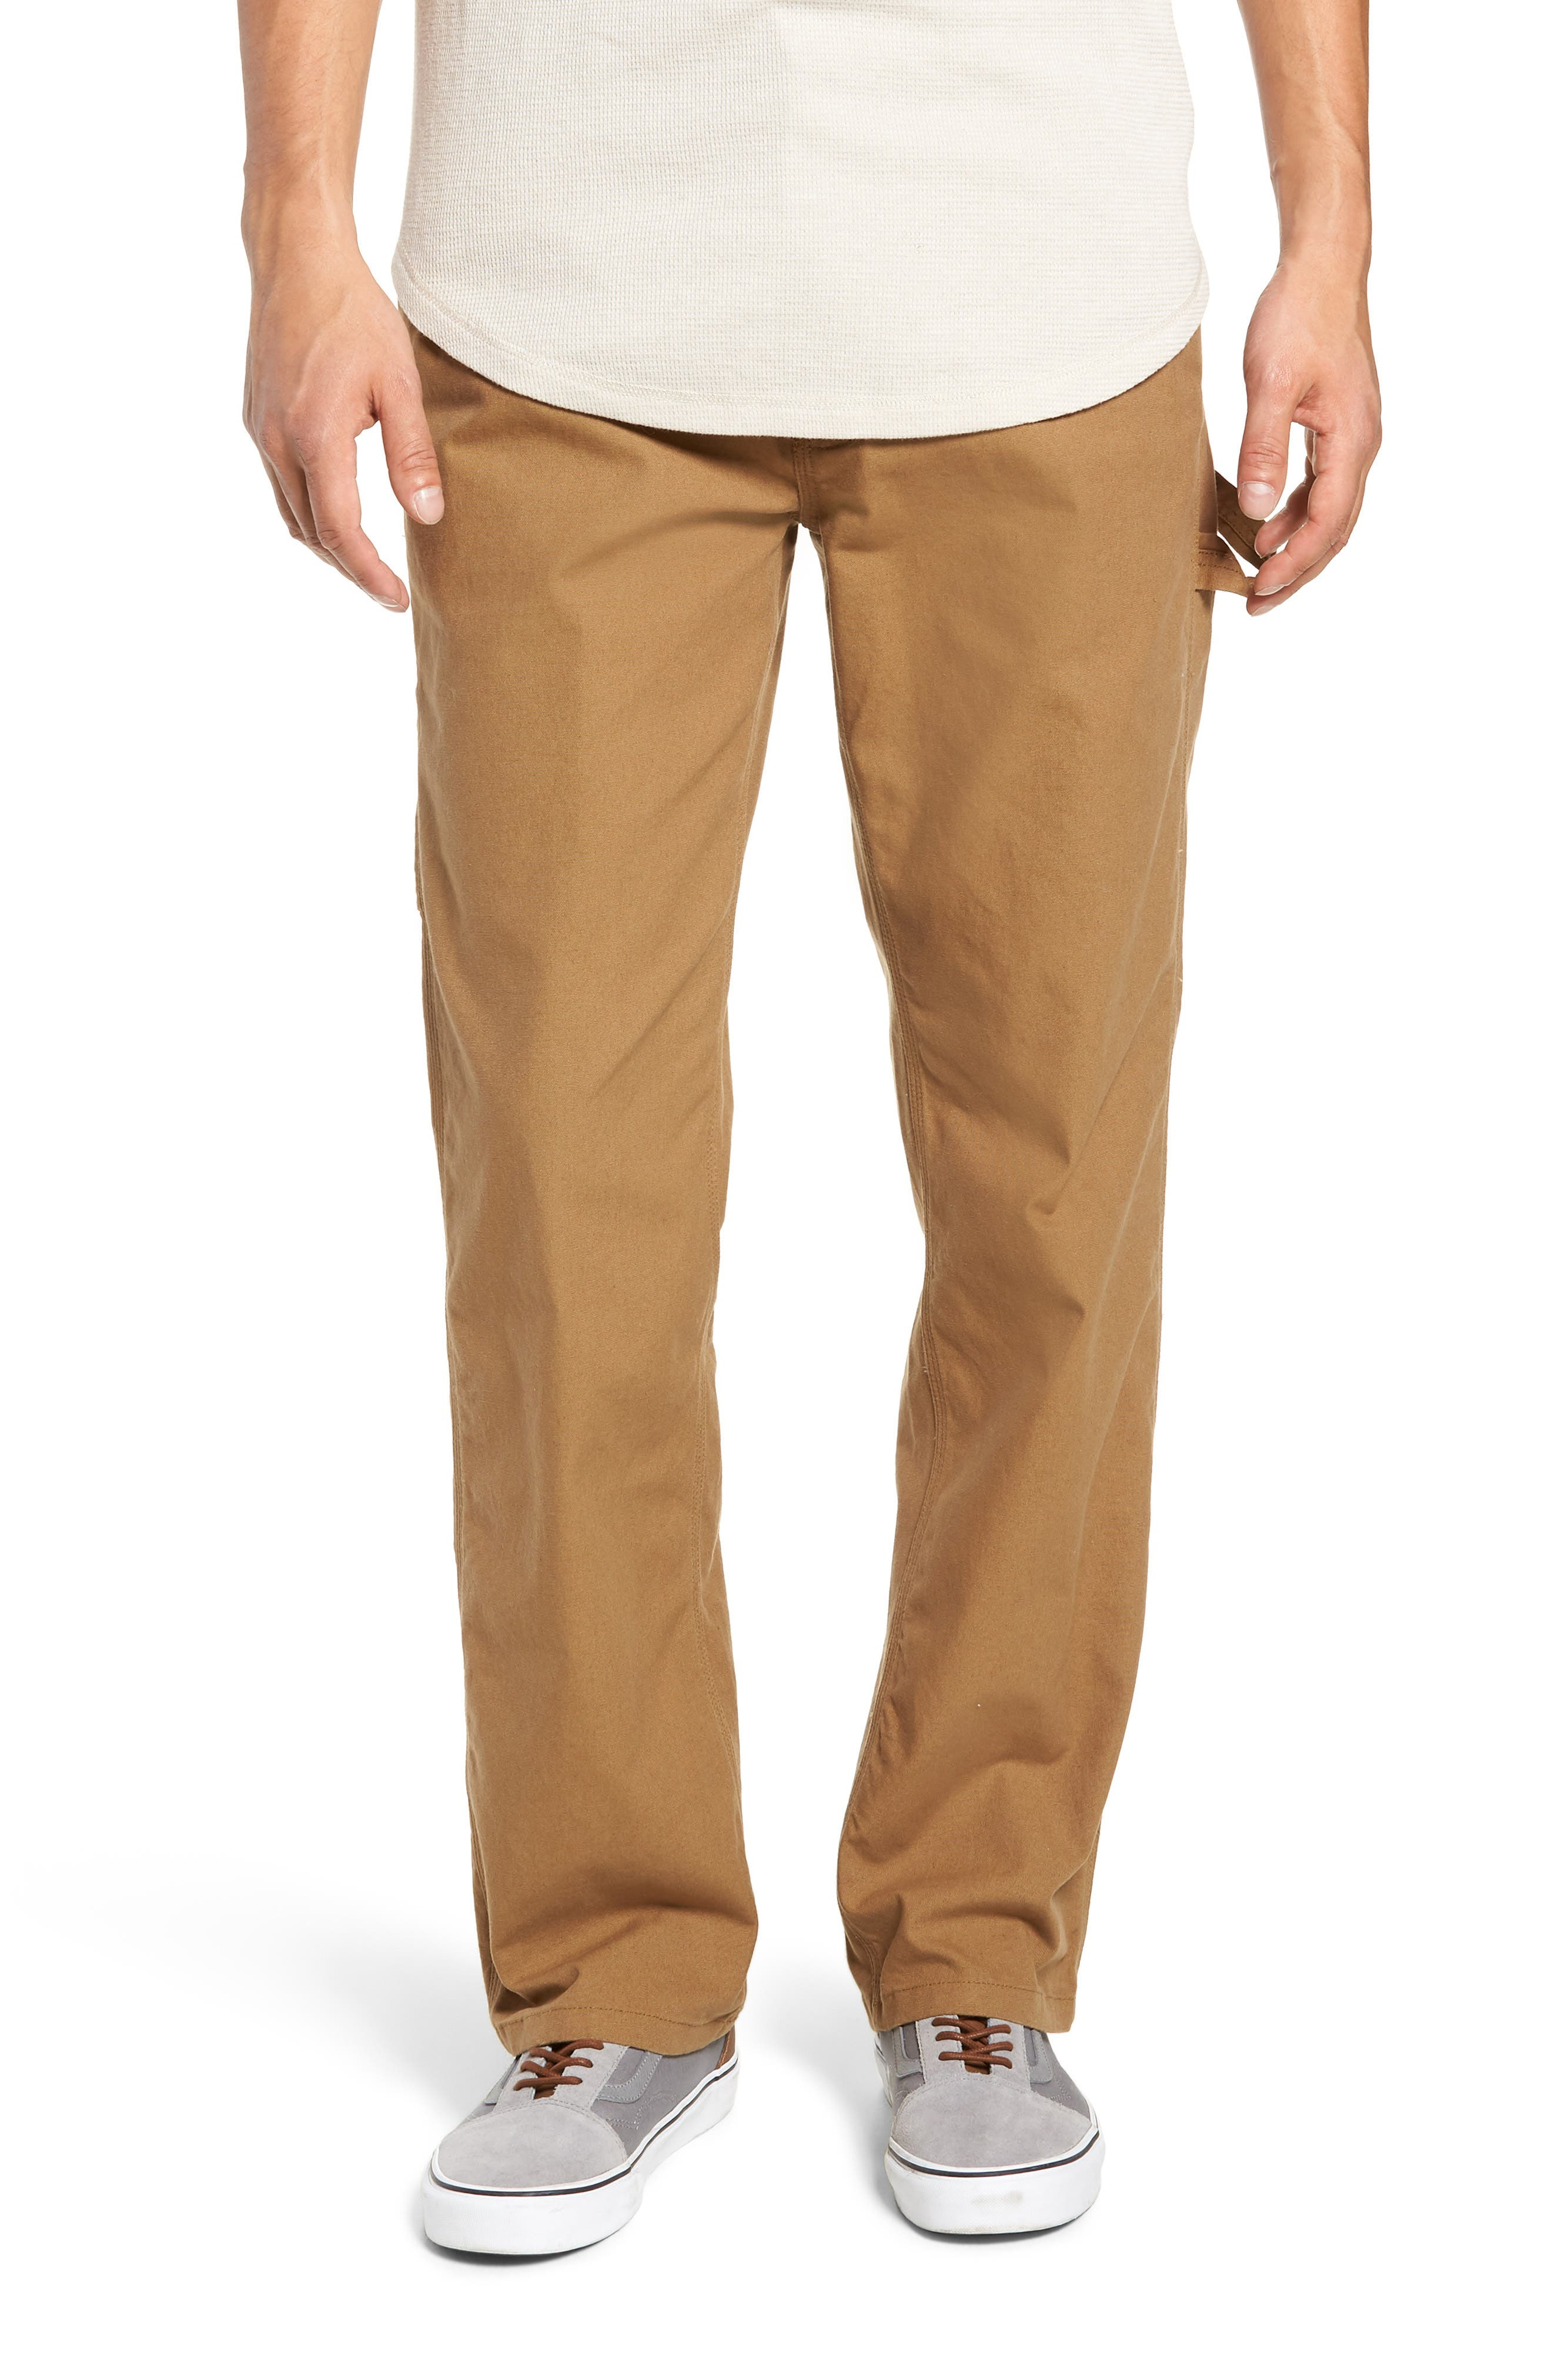 Hardware Straight Fit Carpenter Pants,                         Main,                         color, DIRT